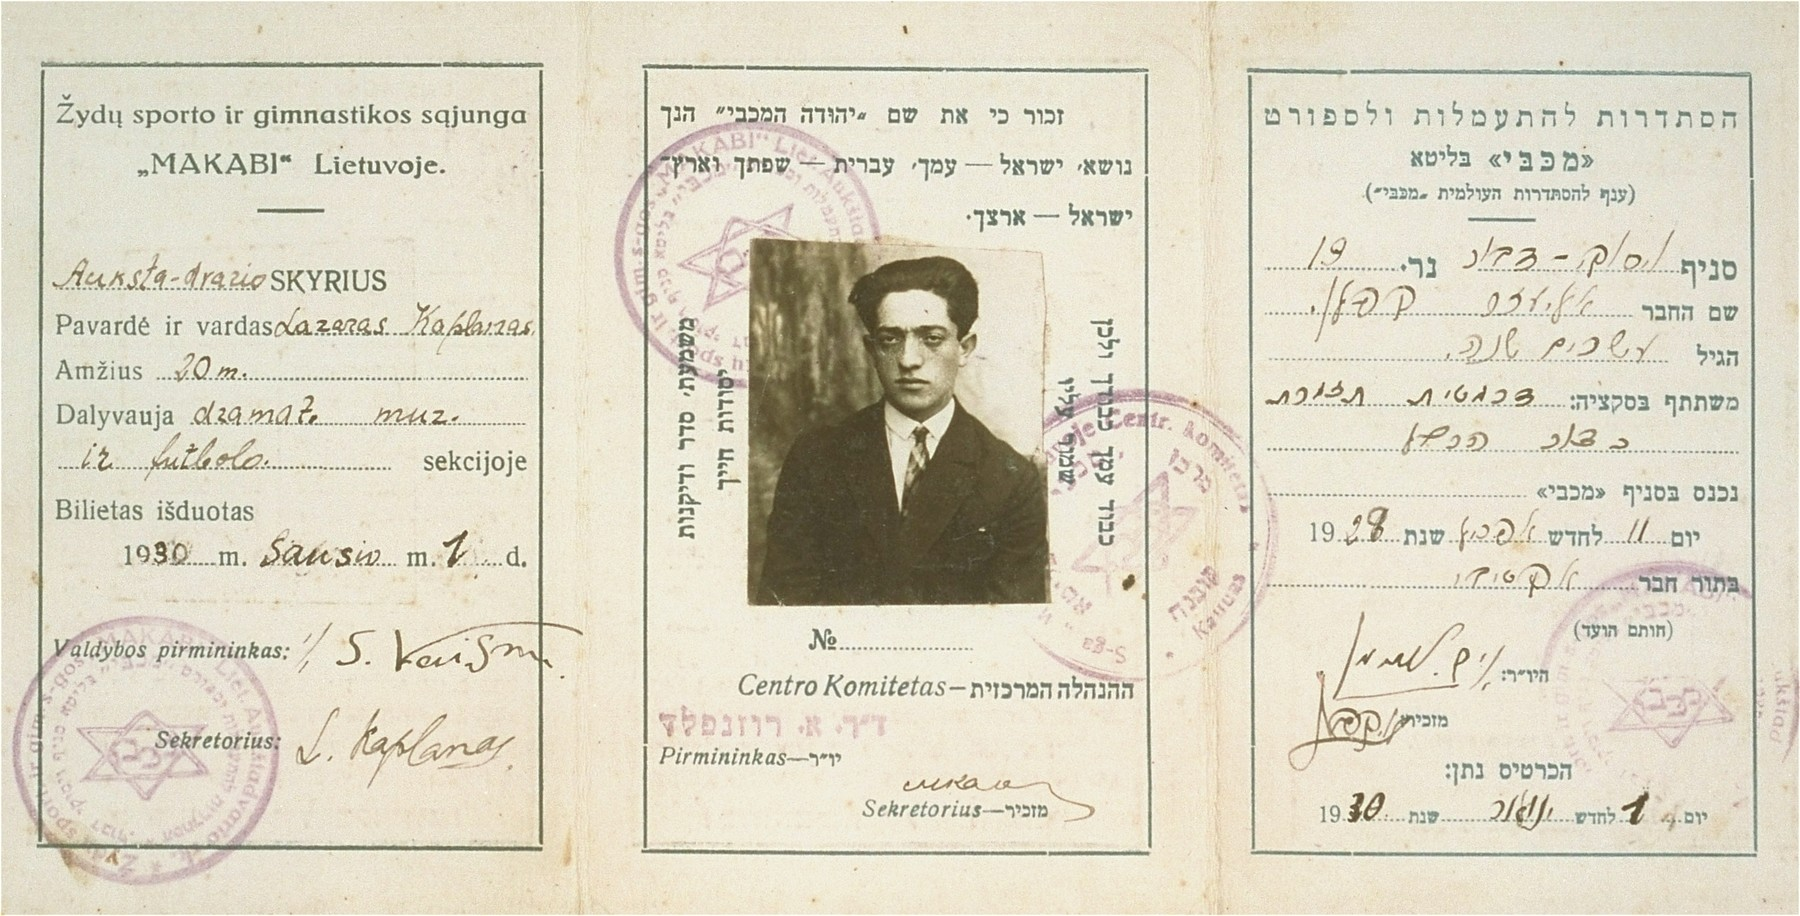 Membership card for the Maccabi Sports Organization in Lithuania, Visokidbor branch, issued to Eliezer Kaplan on January 1, 1930.